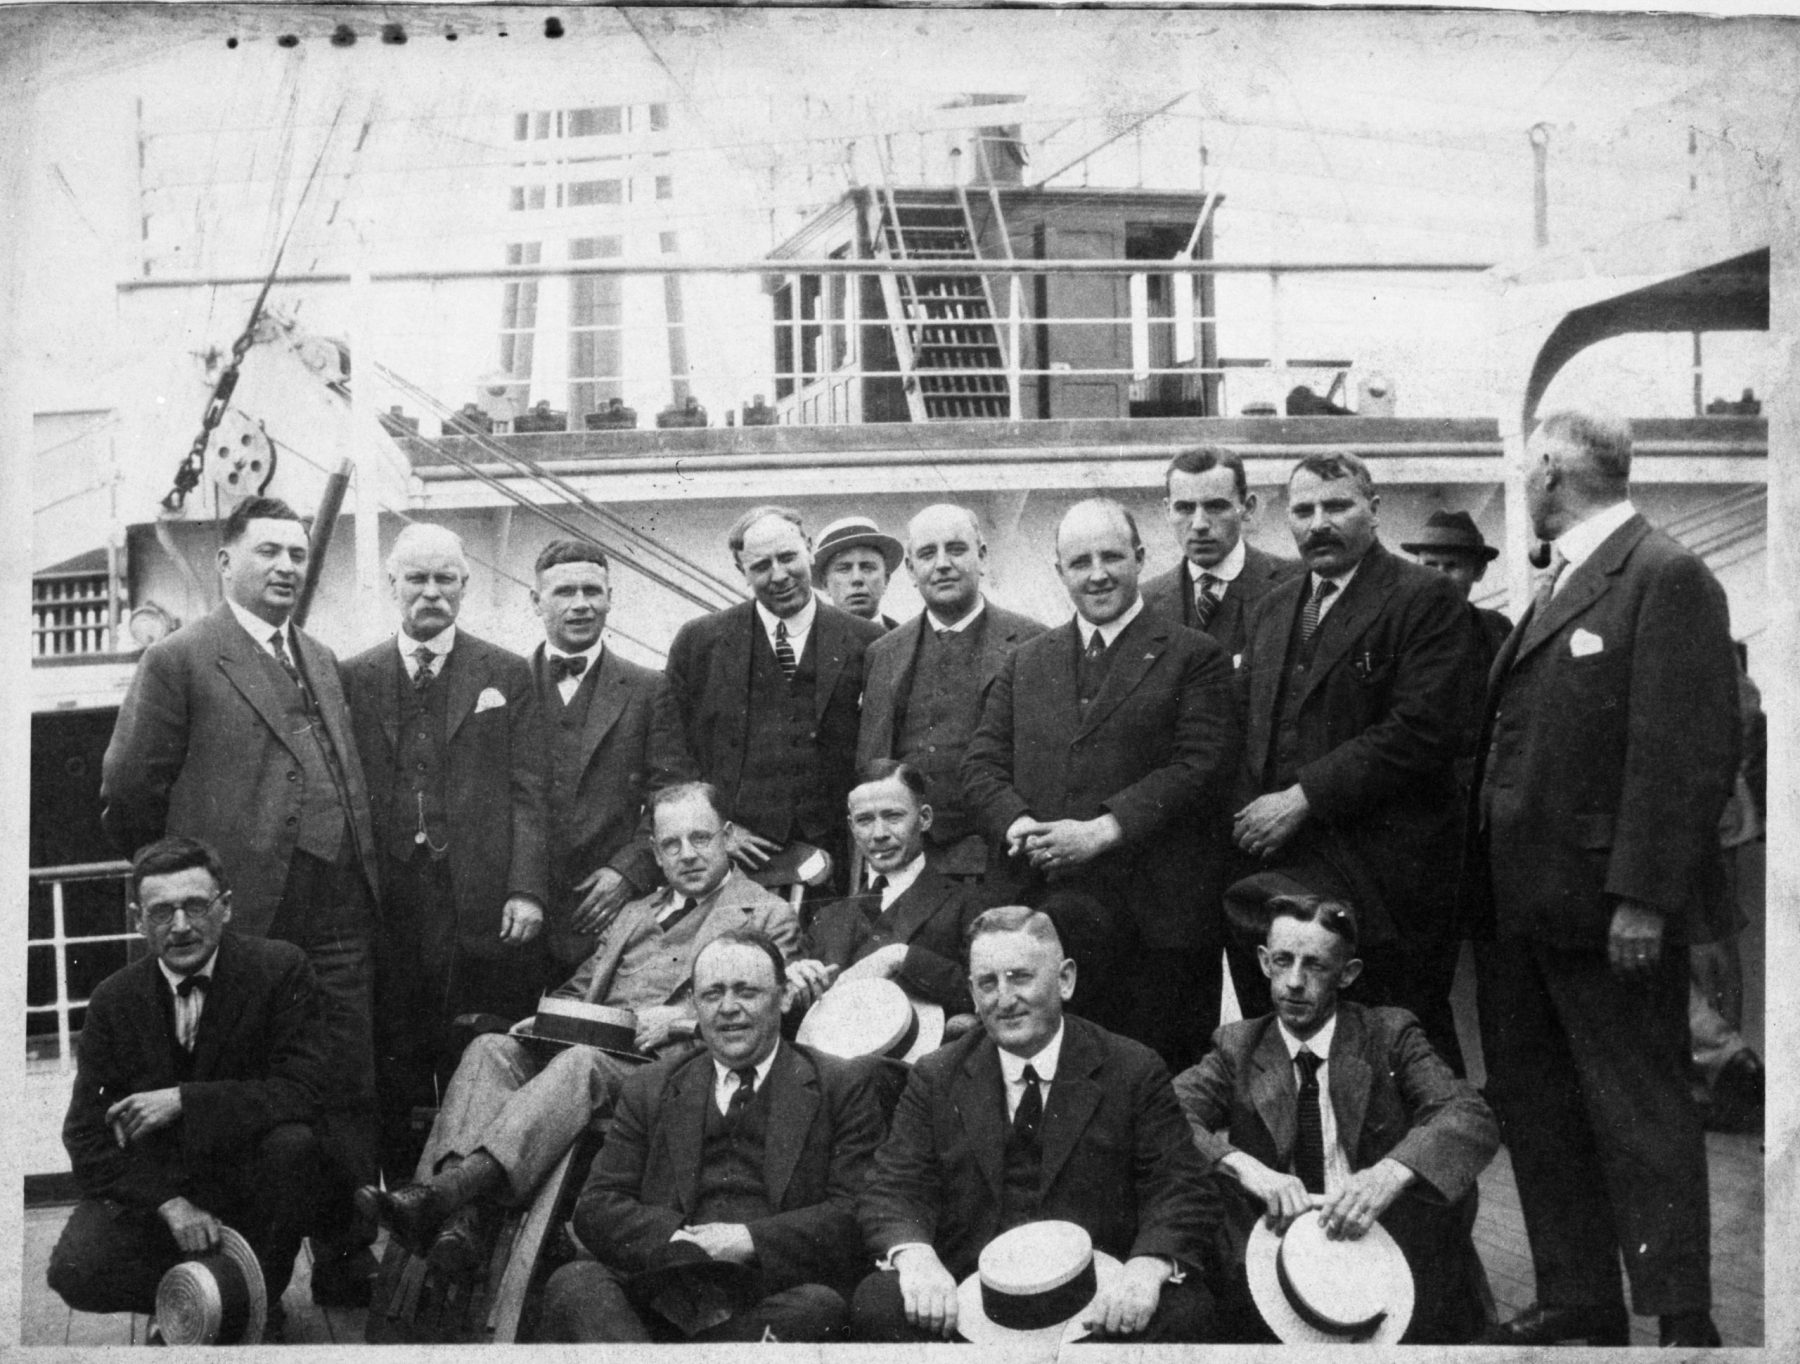 Steamship agents on board a passenger liner, ca. 1920. Included in this photo are local agents Henry Dworkin, Joseph Graner, and H. N. Sivitz.   OJA, item 6083.